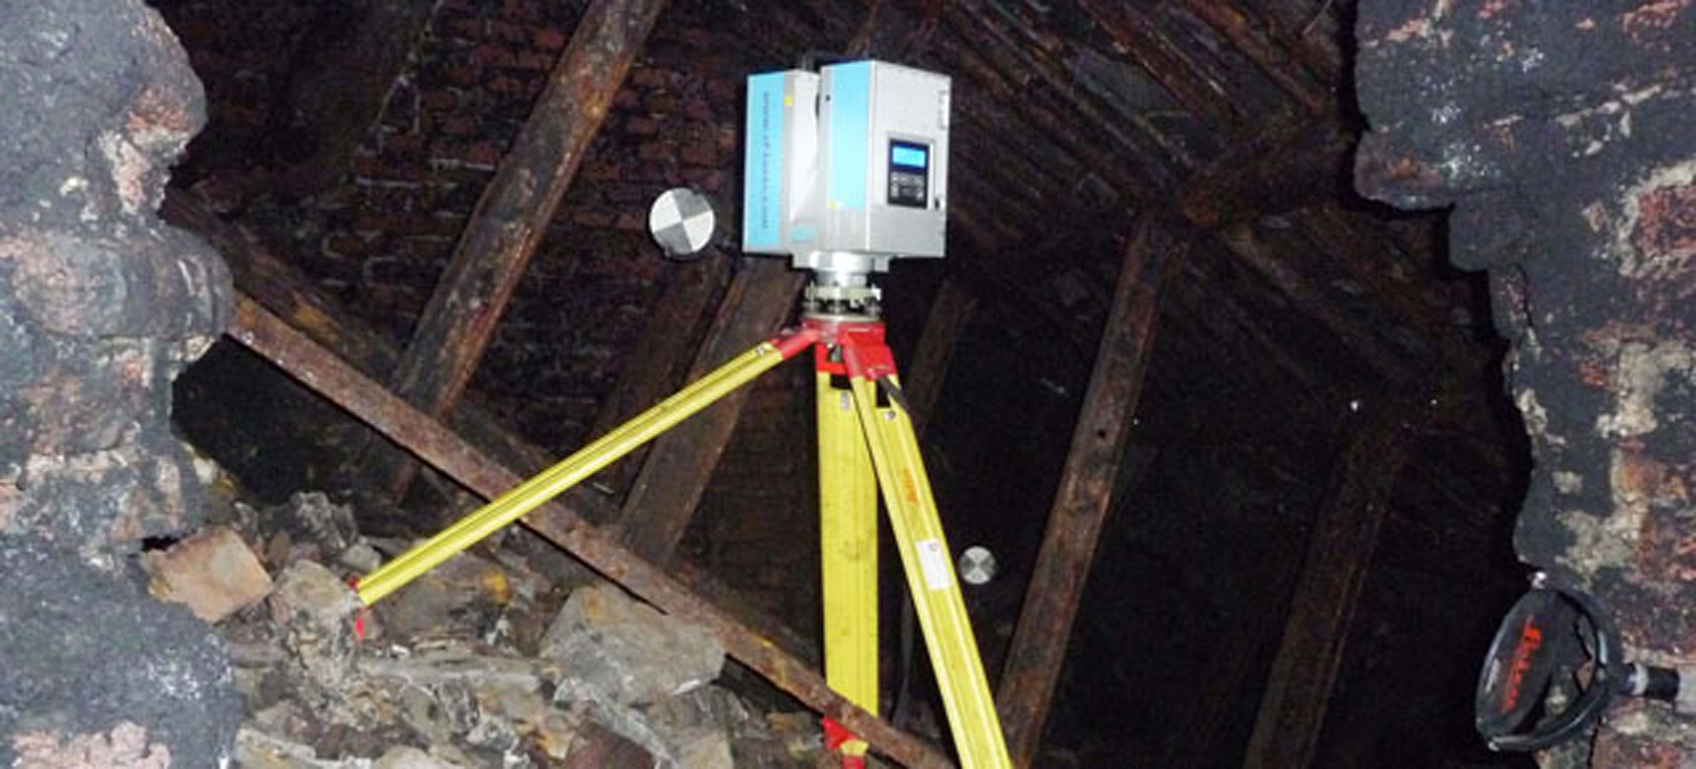 3D Laser Scanner In An Abandoned Mine Working